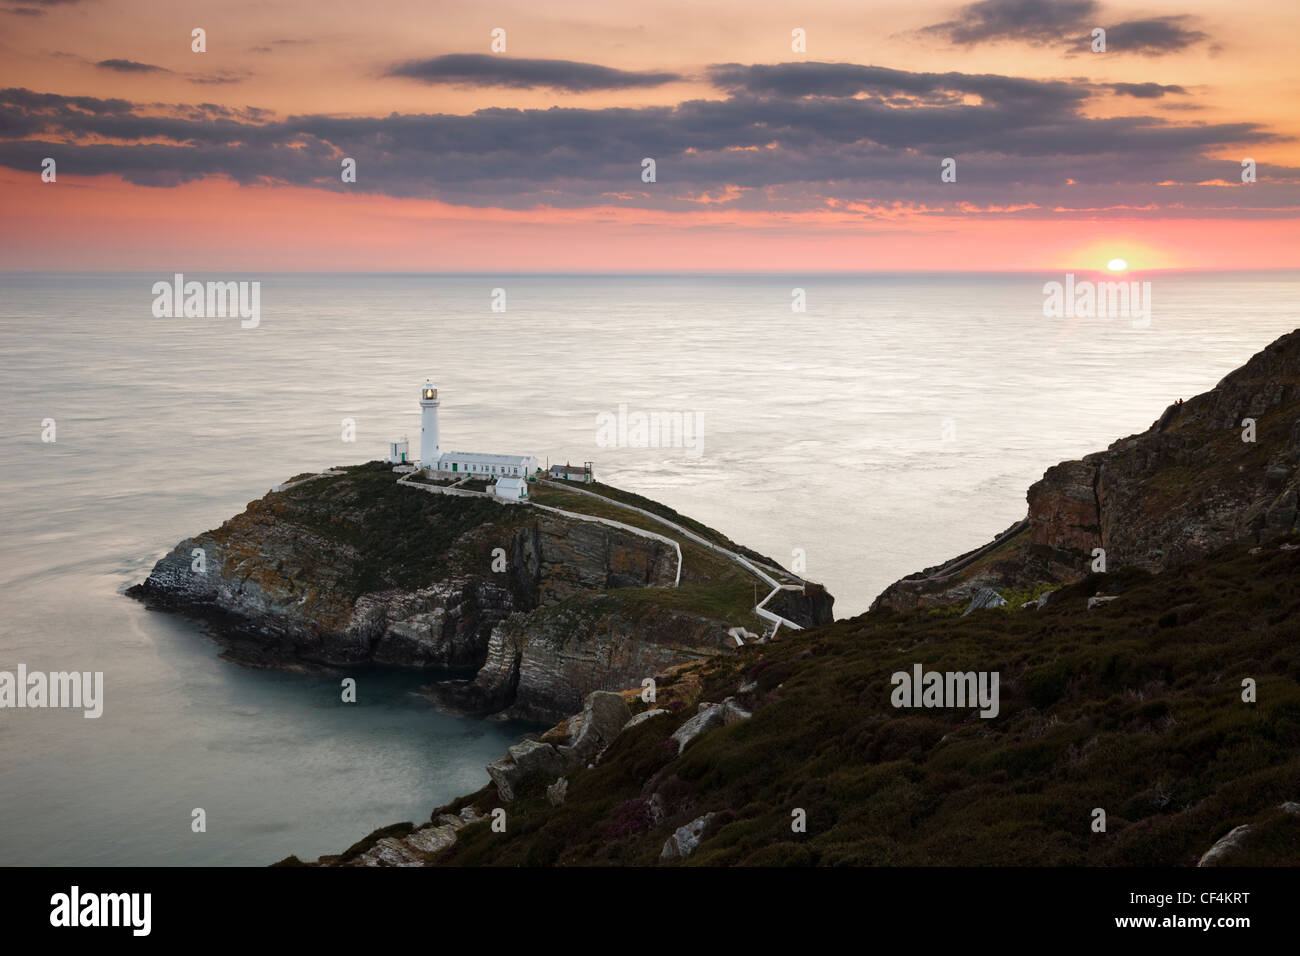 The sun setting on the horizon behind South Stack Lighthouse, a spectacular lighthouse just off Holy Island on the Stock Photo